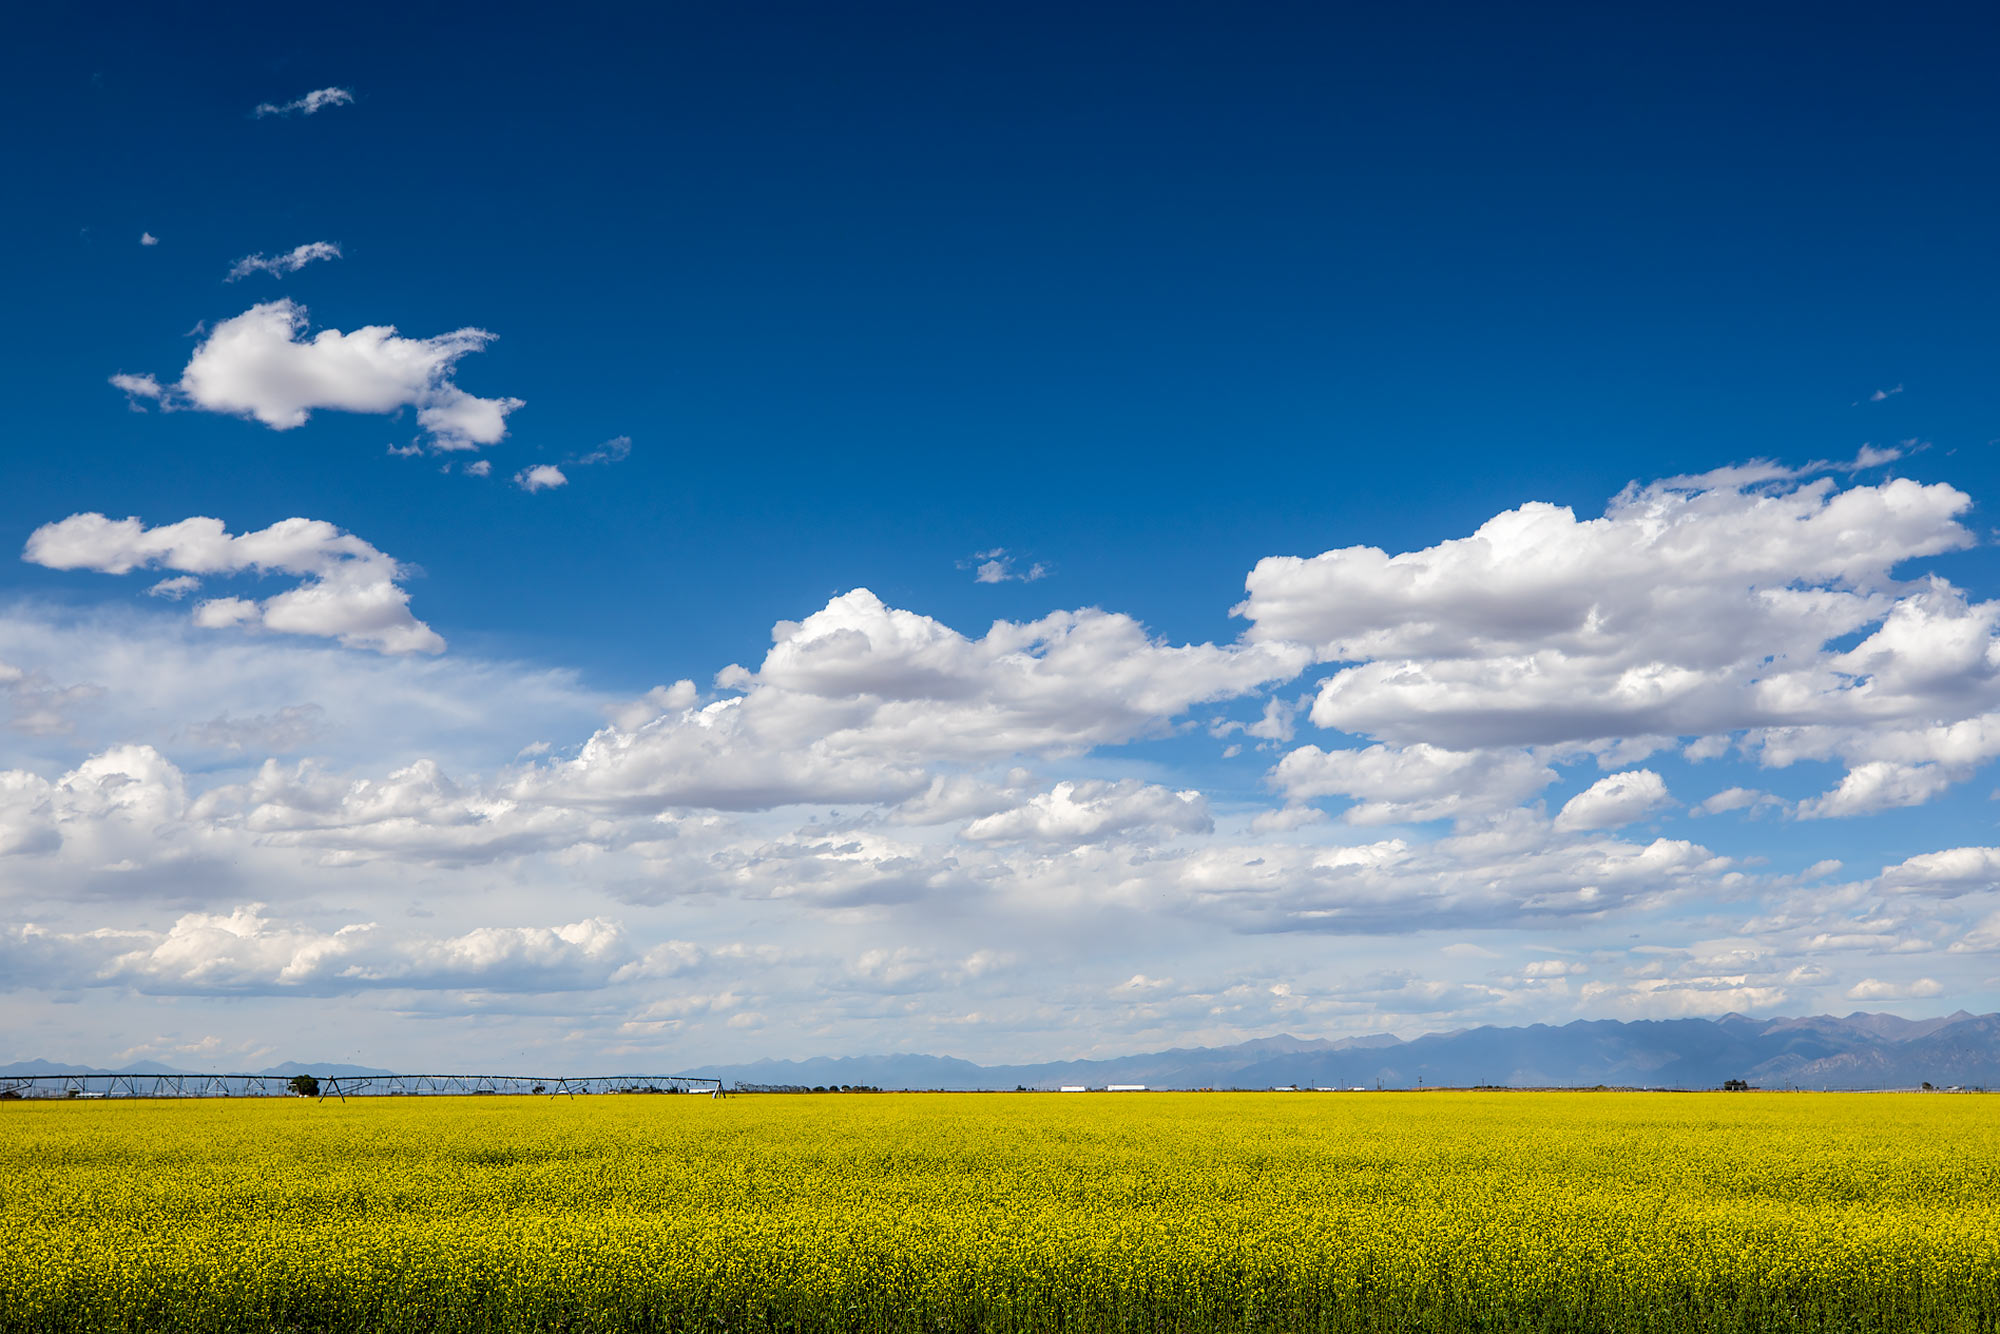 A canola farm under blue skies |  Scott Gable industrial photographer